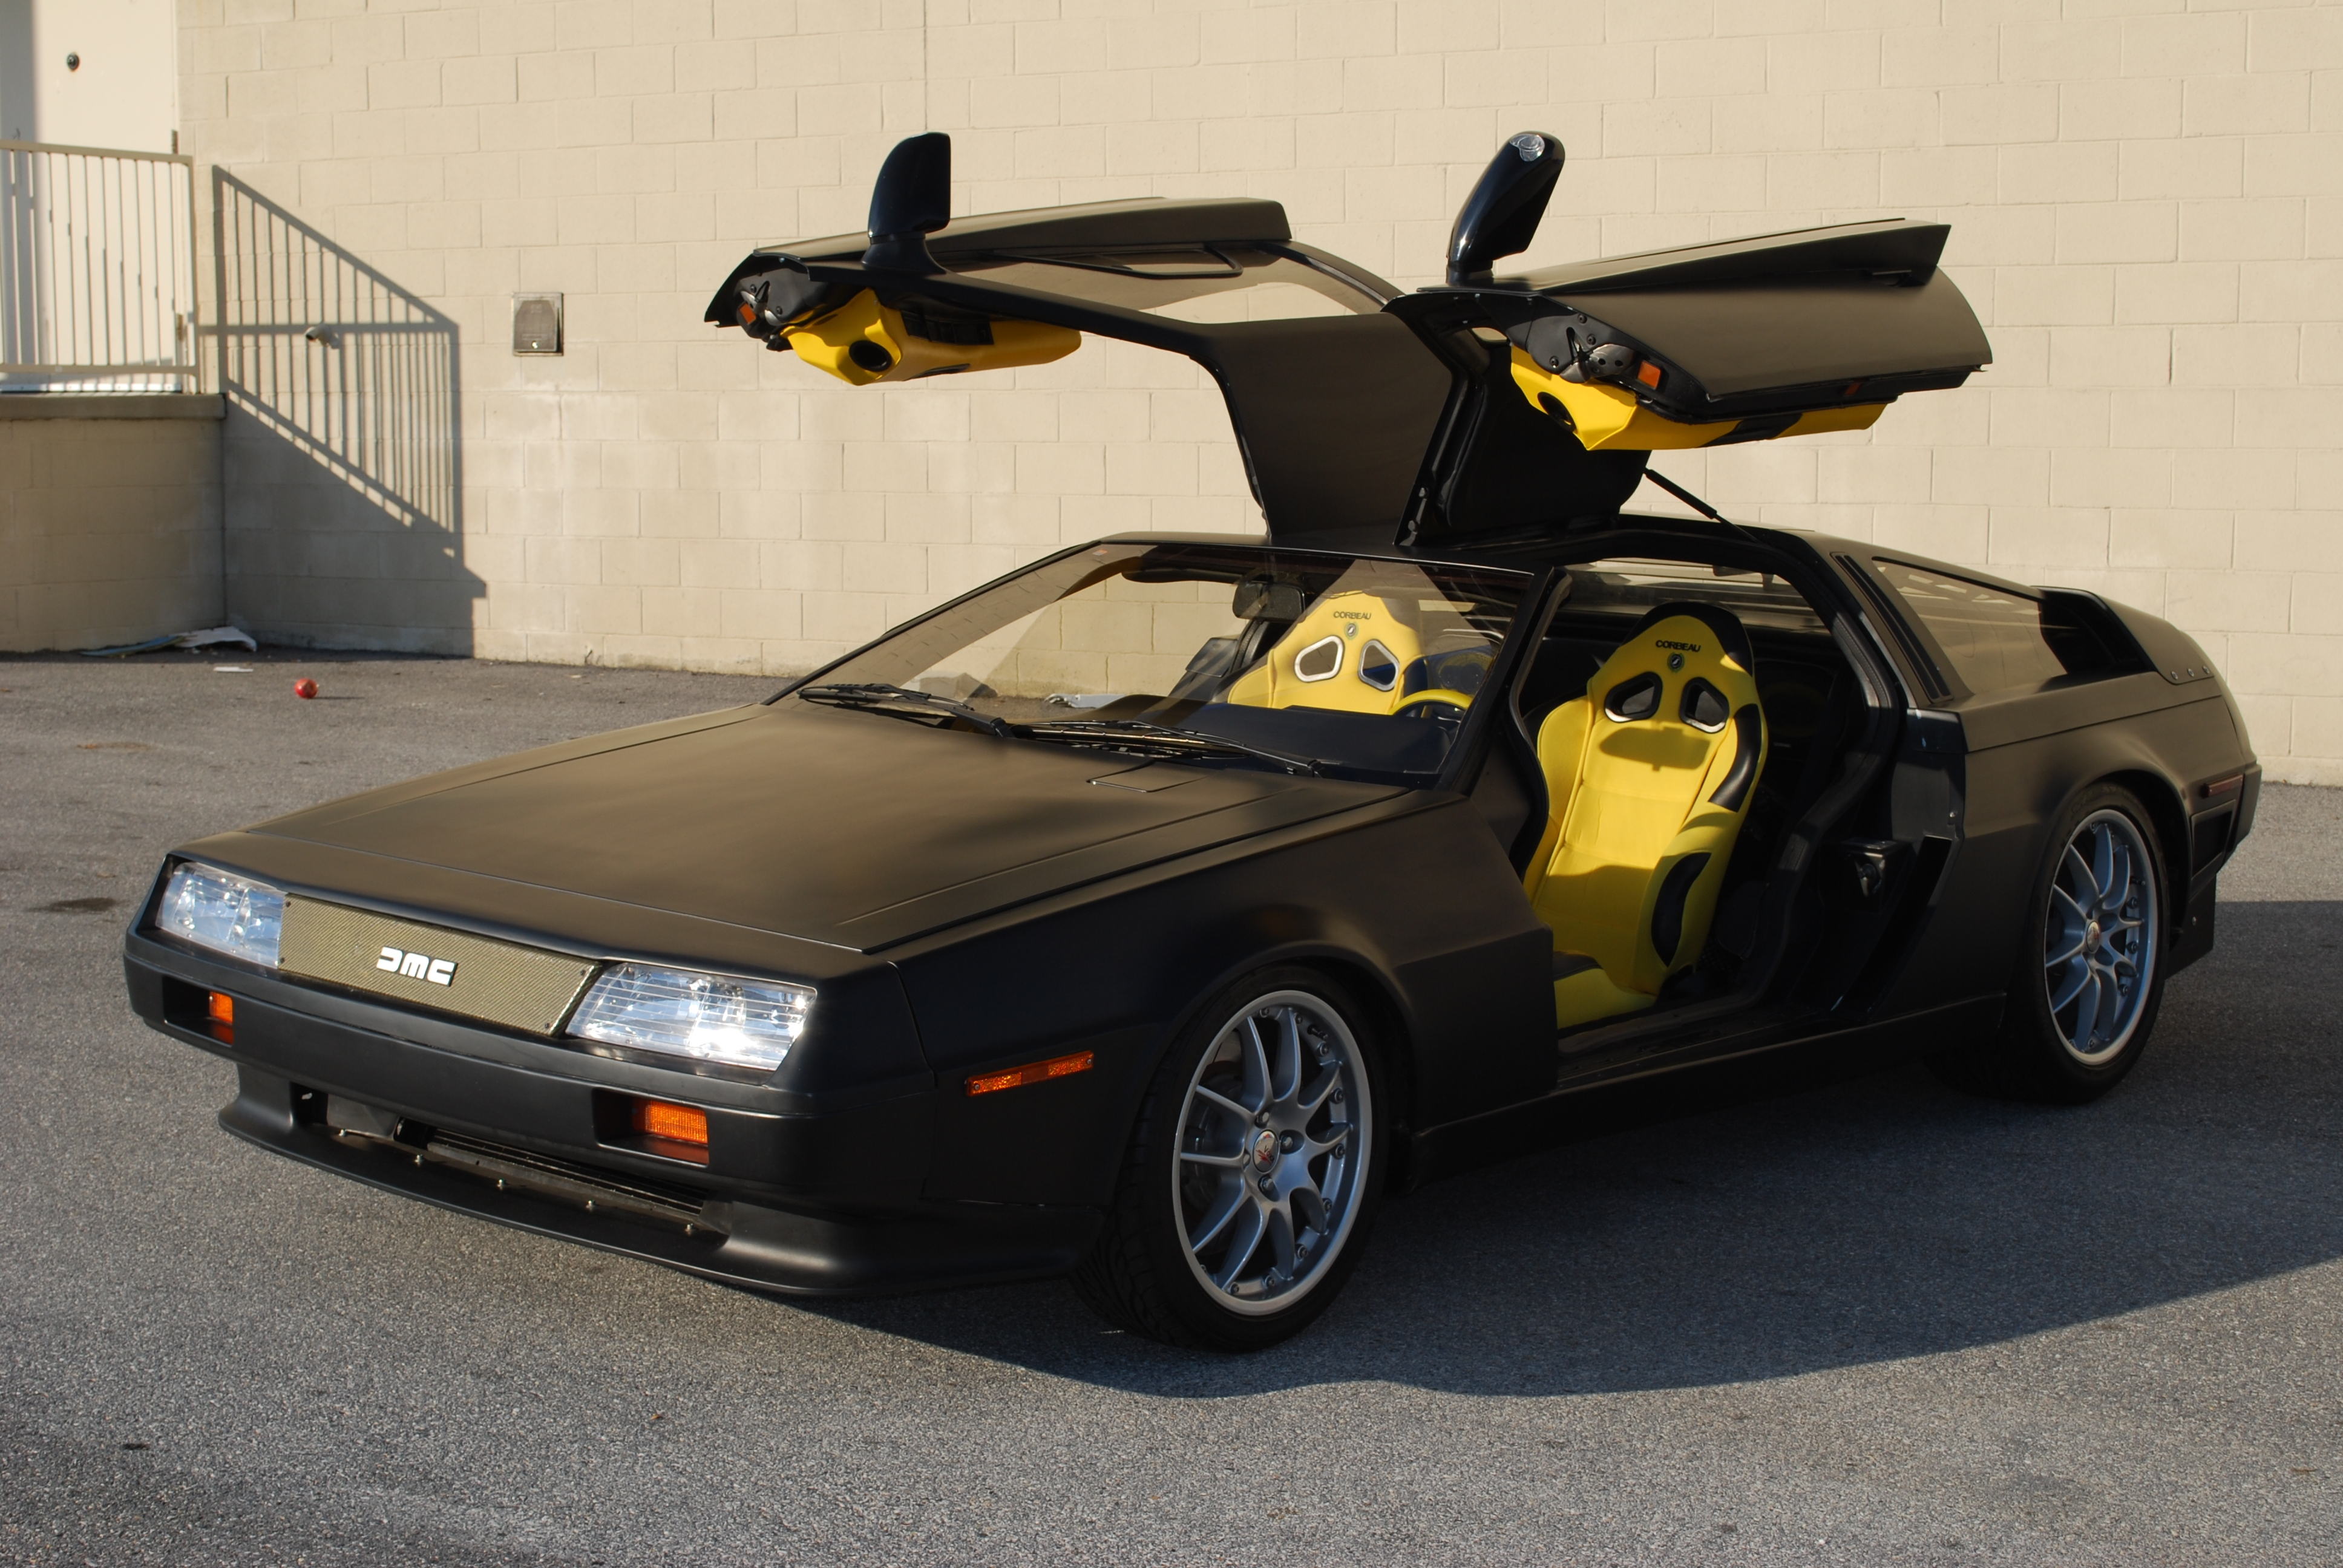 protodelorean 1981 DeLorean DMC-12 8844068